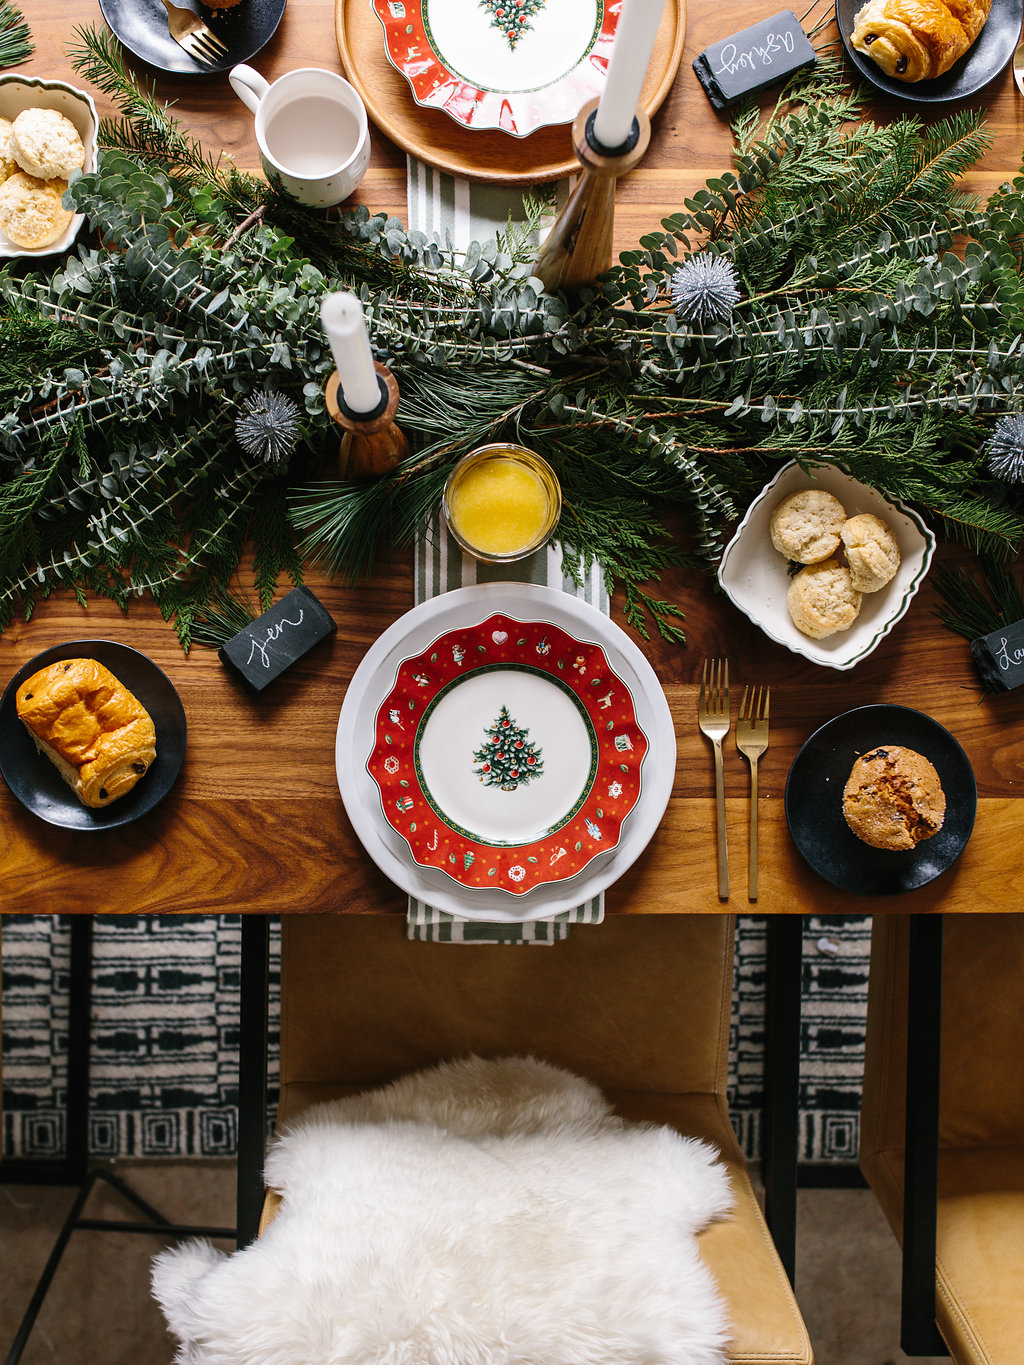 Villery Und Boch A Fresh Take On Traditional Christmas Dishes With Villeroy Boch